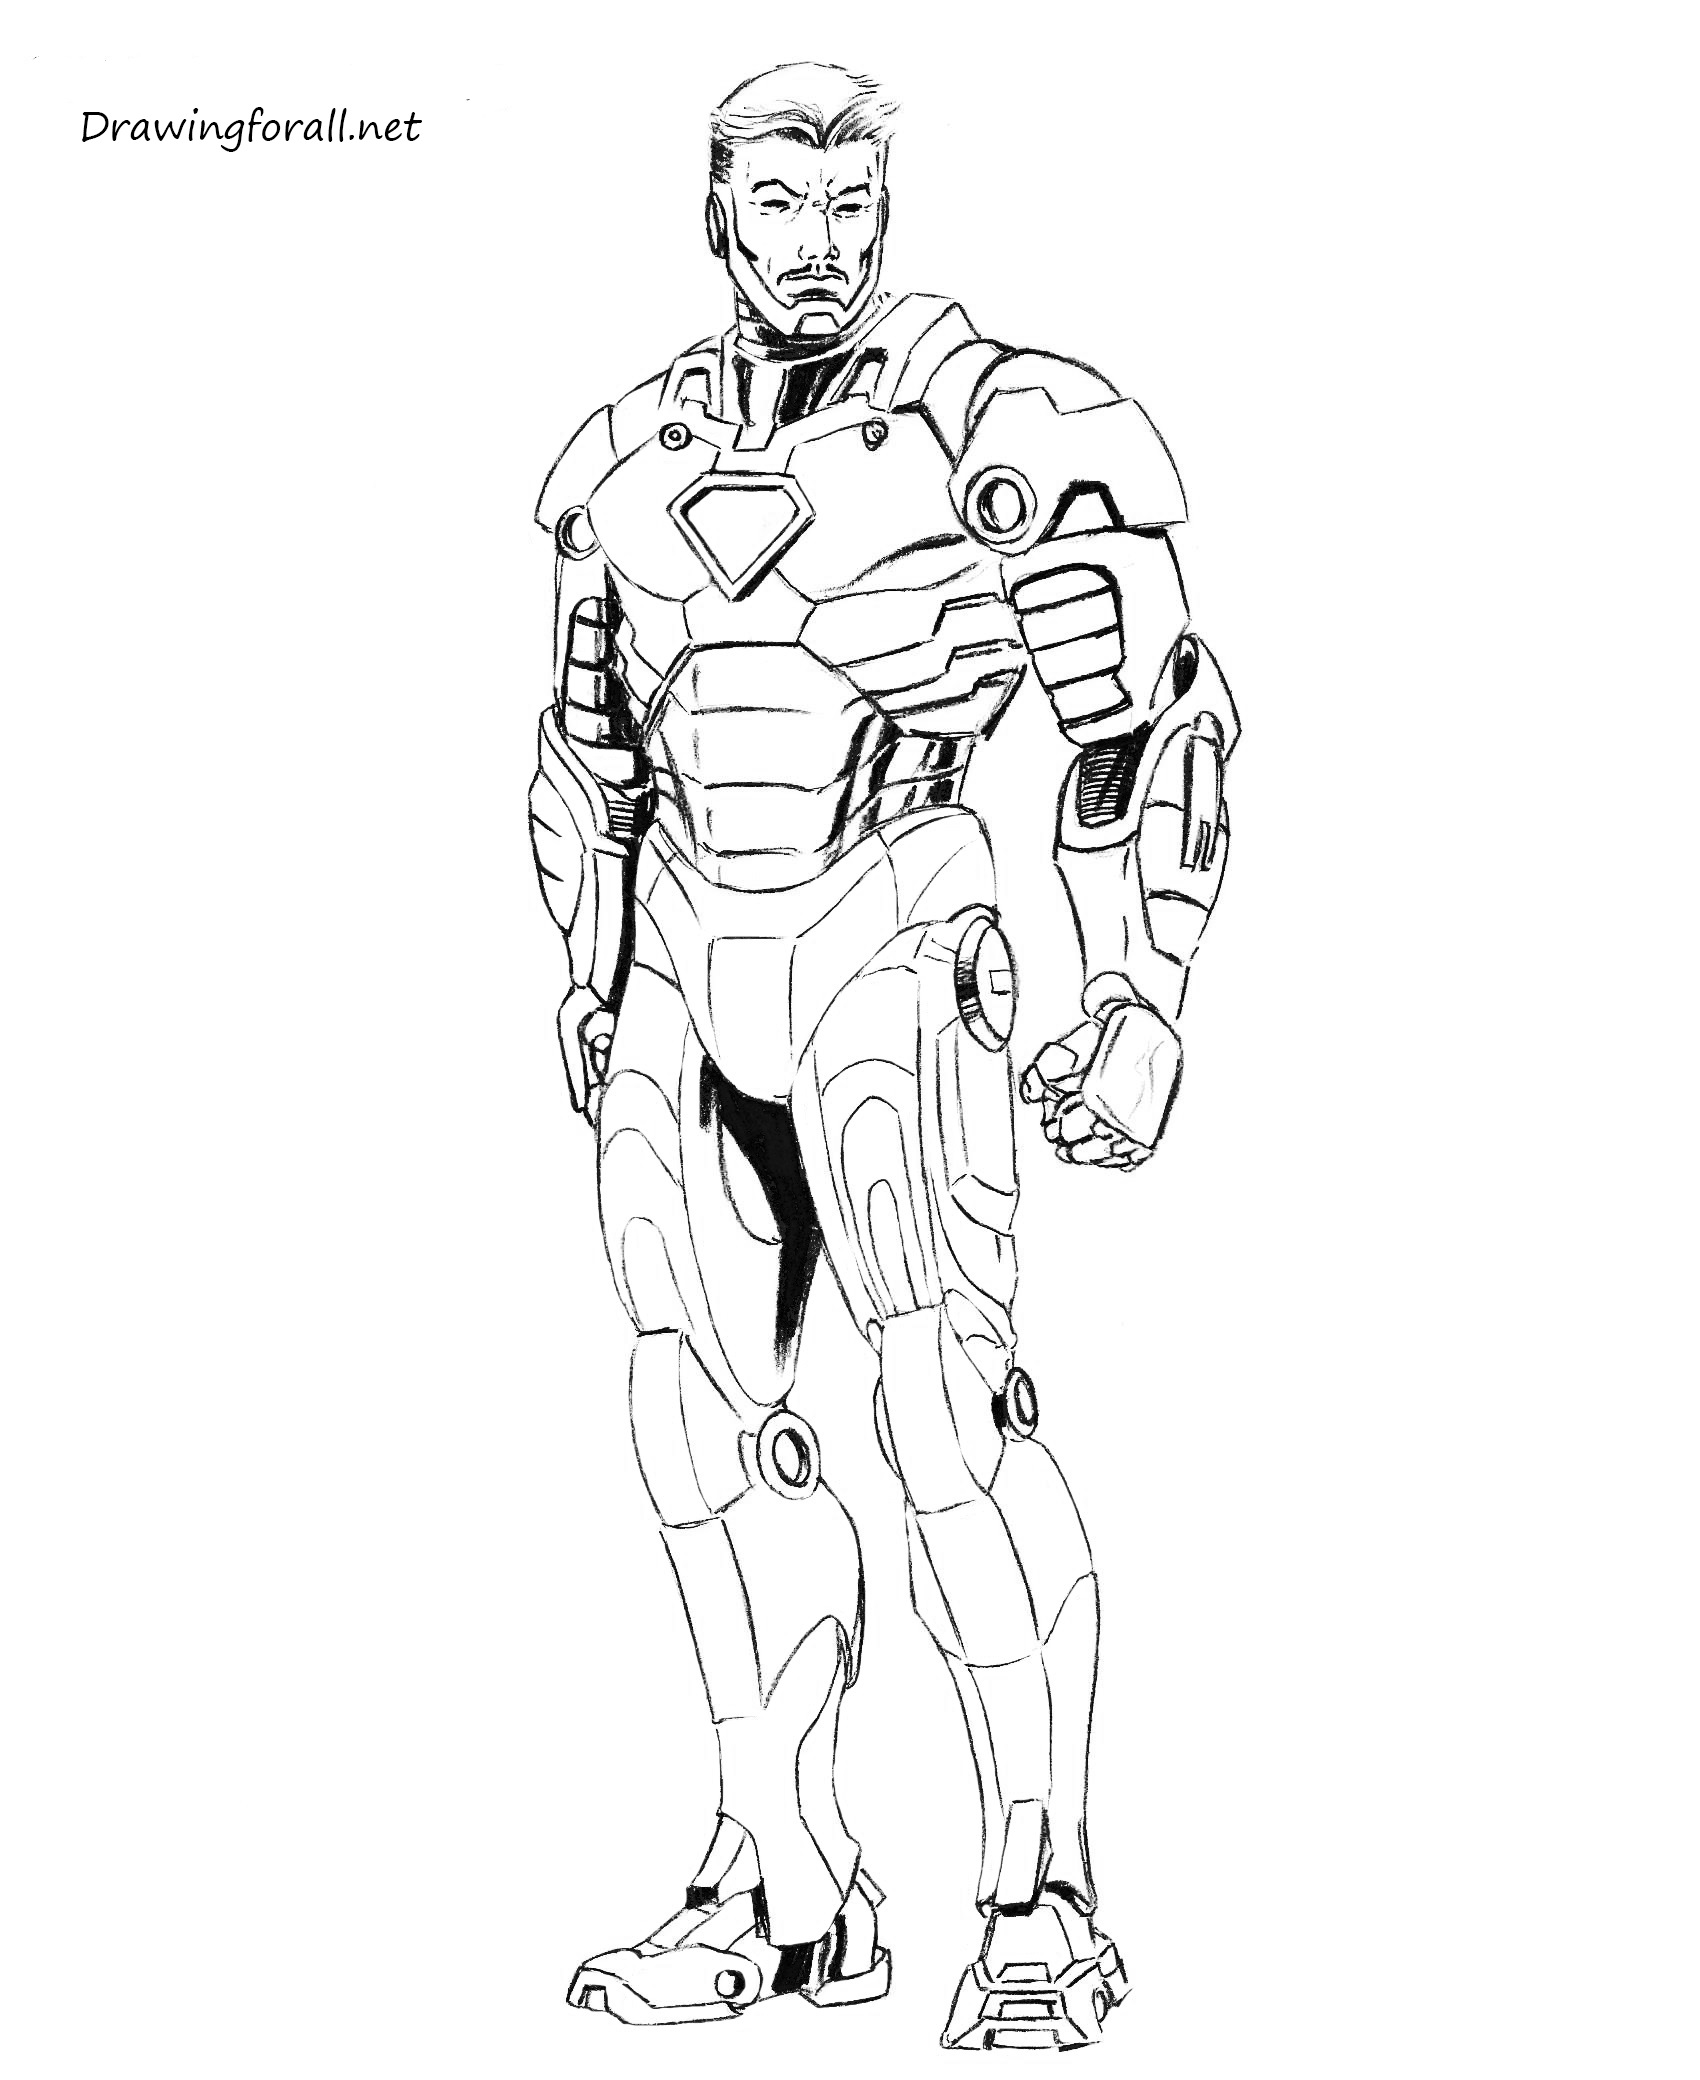 how to draw a iron man helmet knight drawing helmet iron man armour knight drawing a helmet iron how to draw man